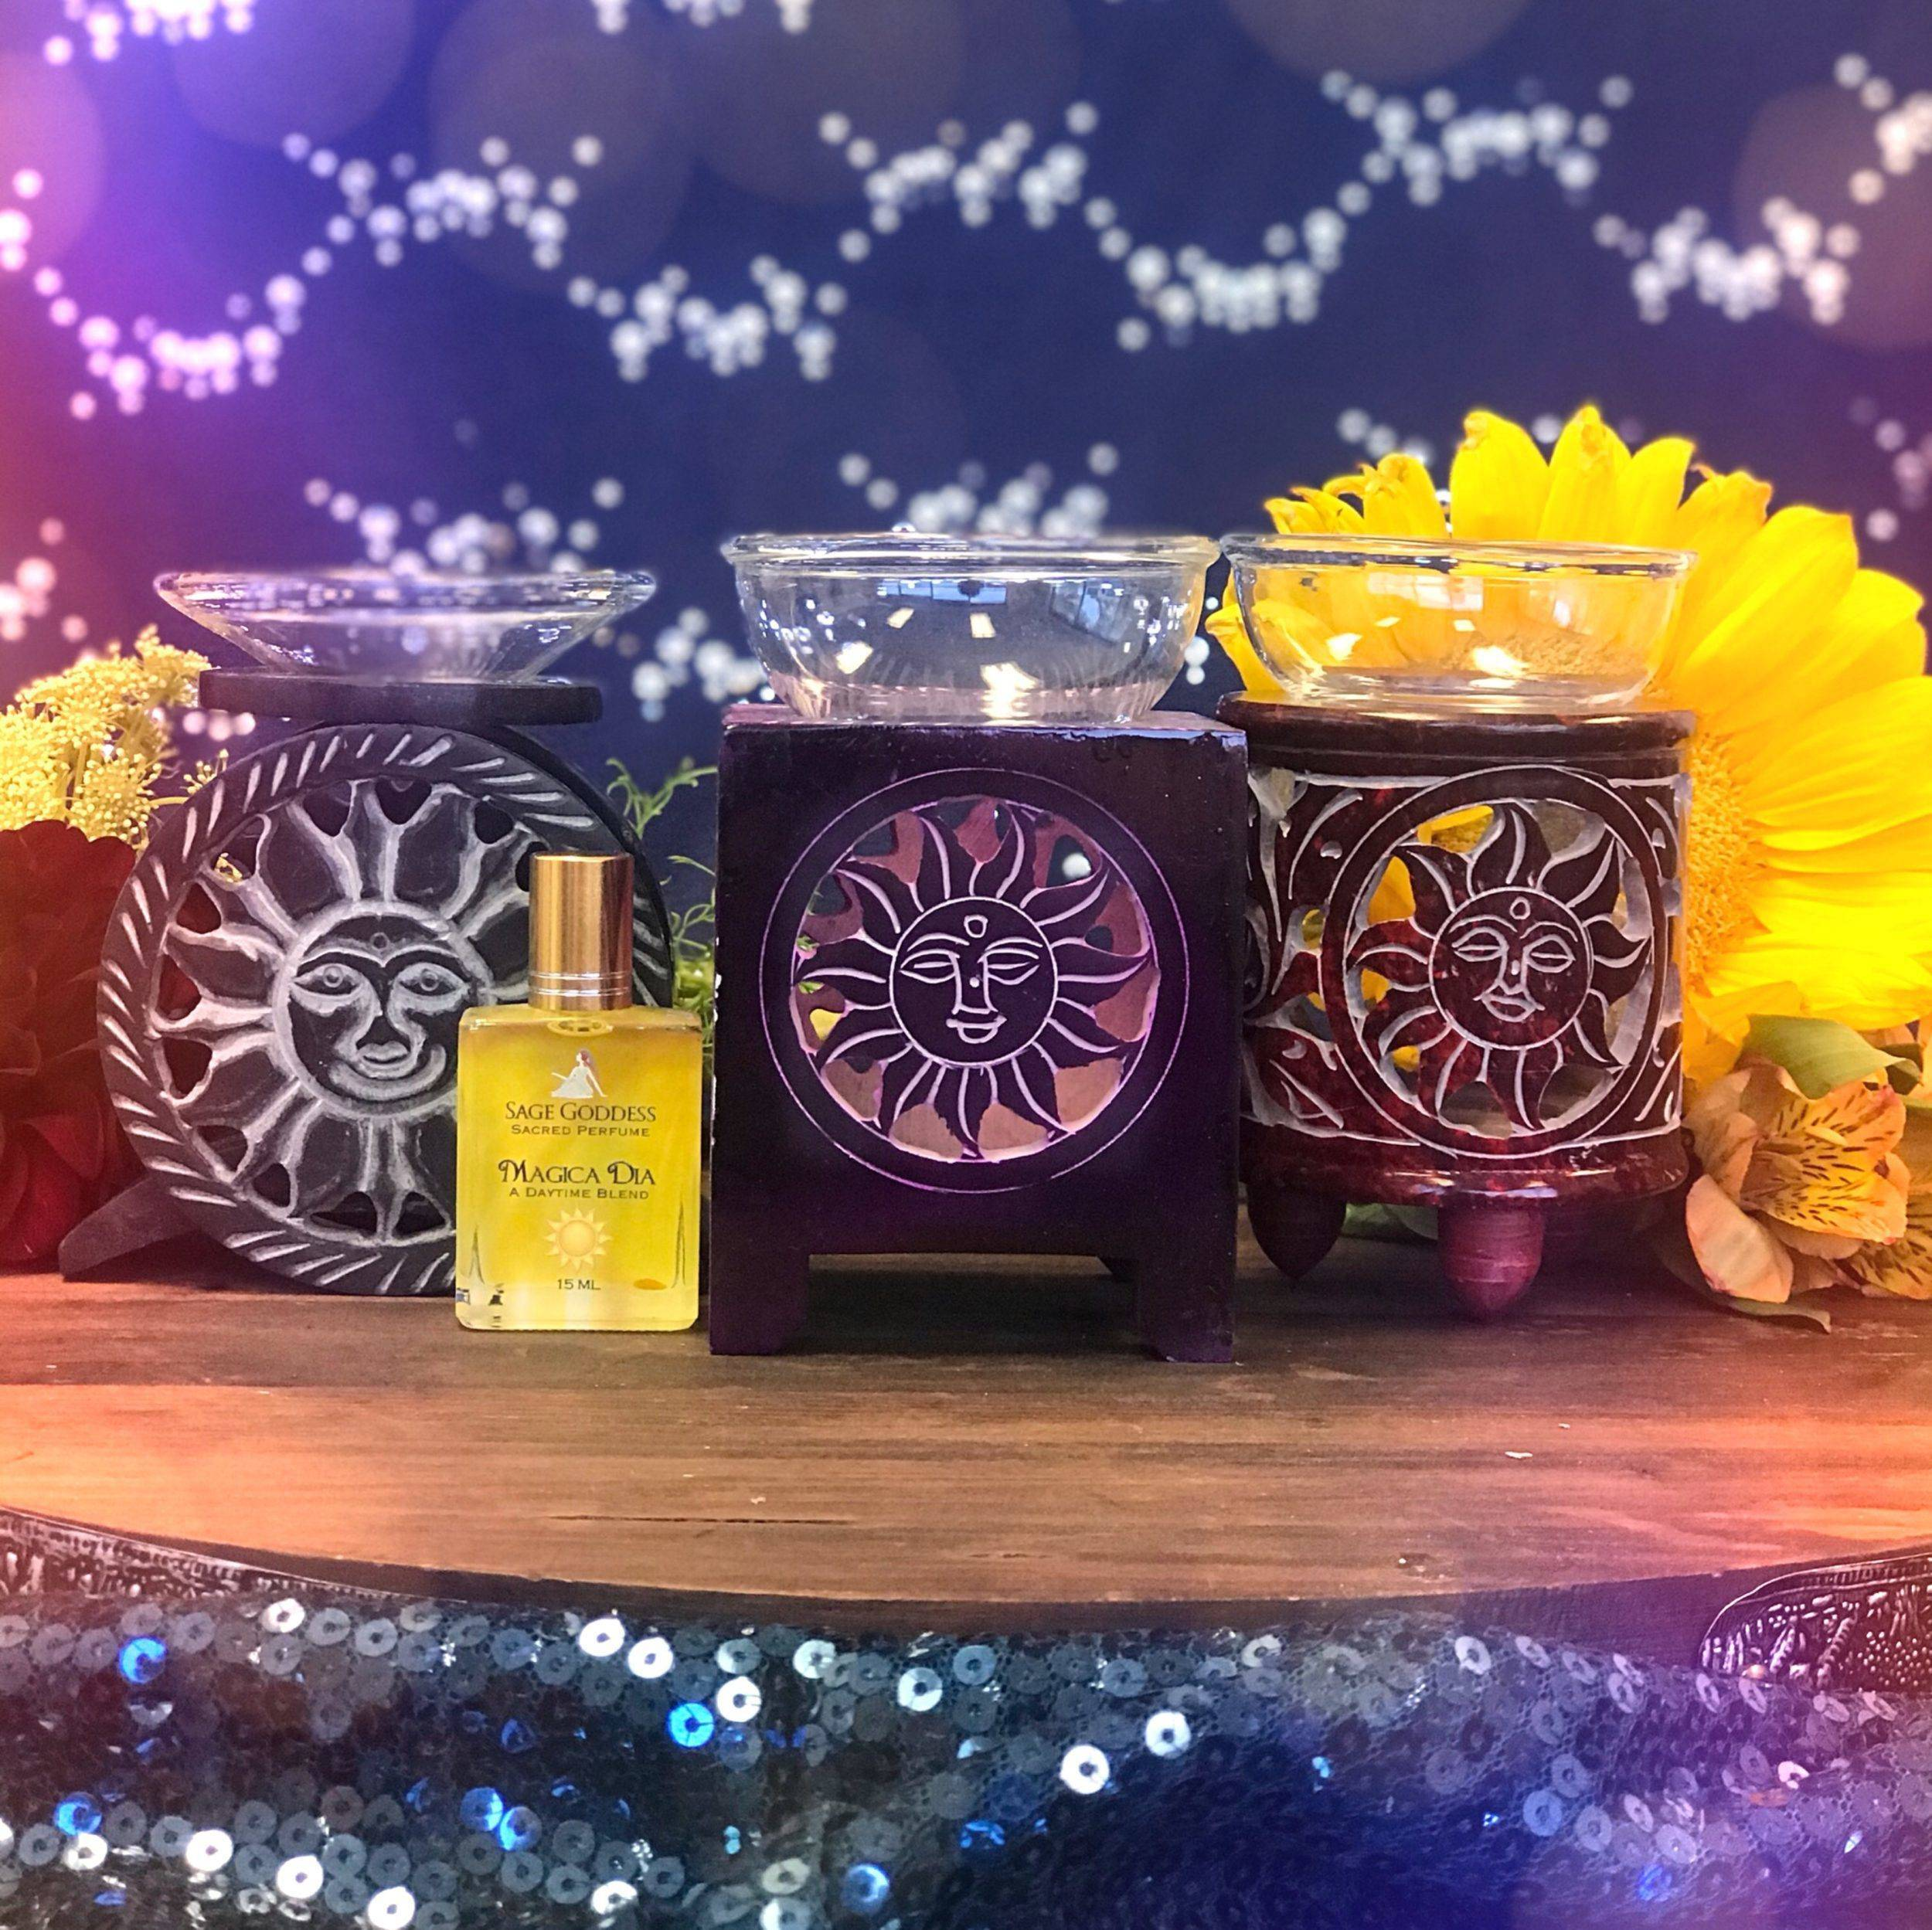 Sun_Soapstone_Oil Burner_with_a_free_gift_of_Magica_Dia_Perfume_1of3_7_24